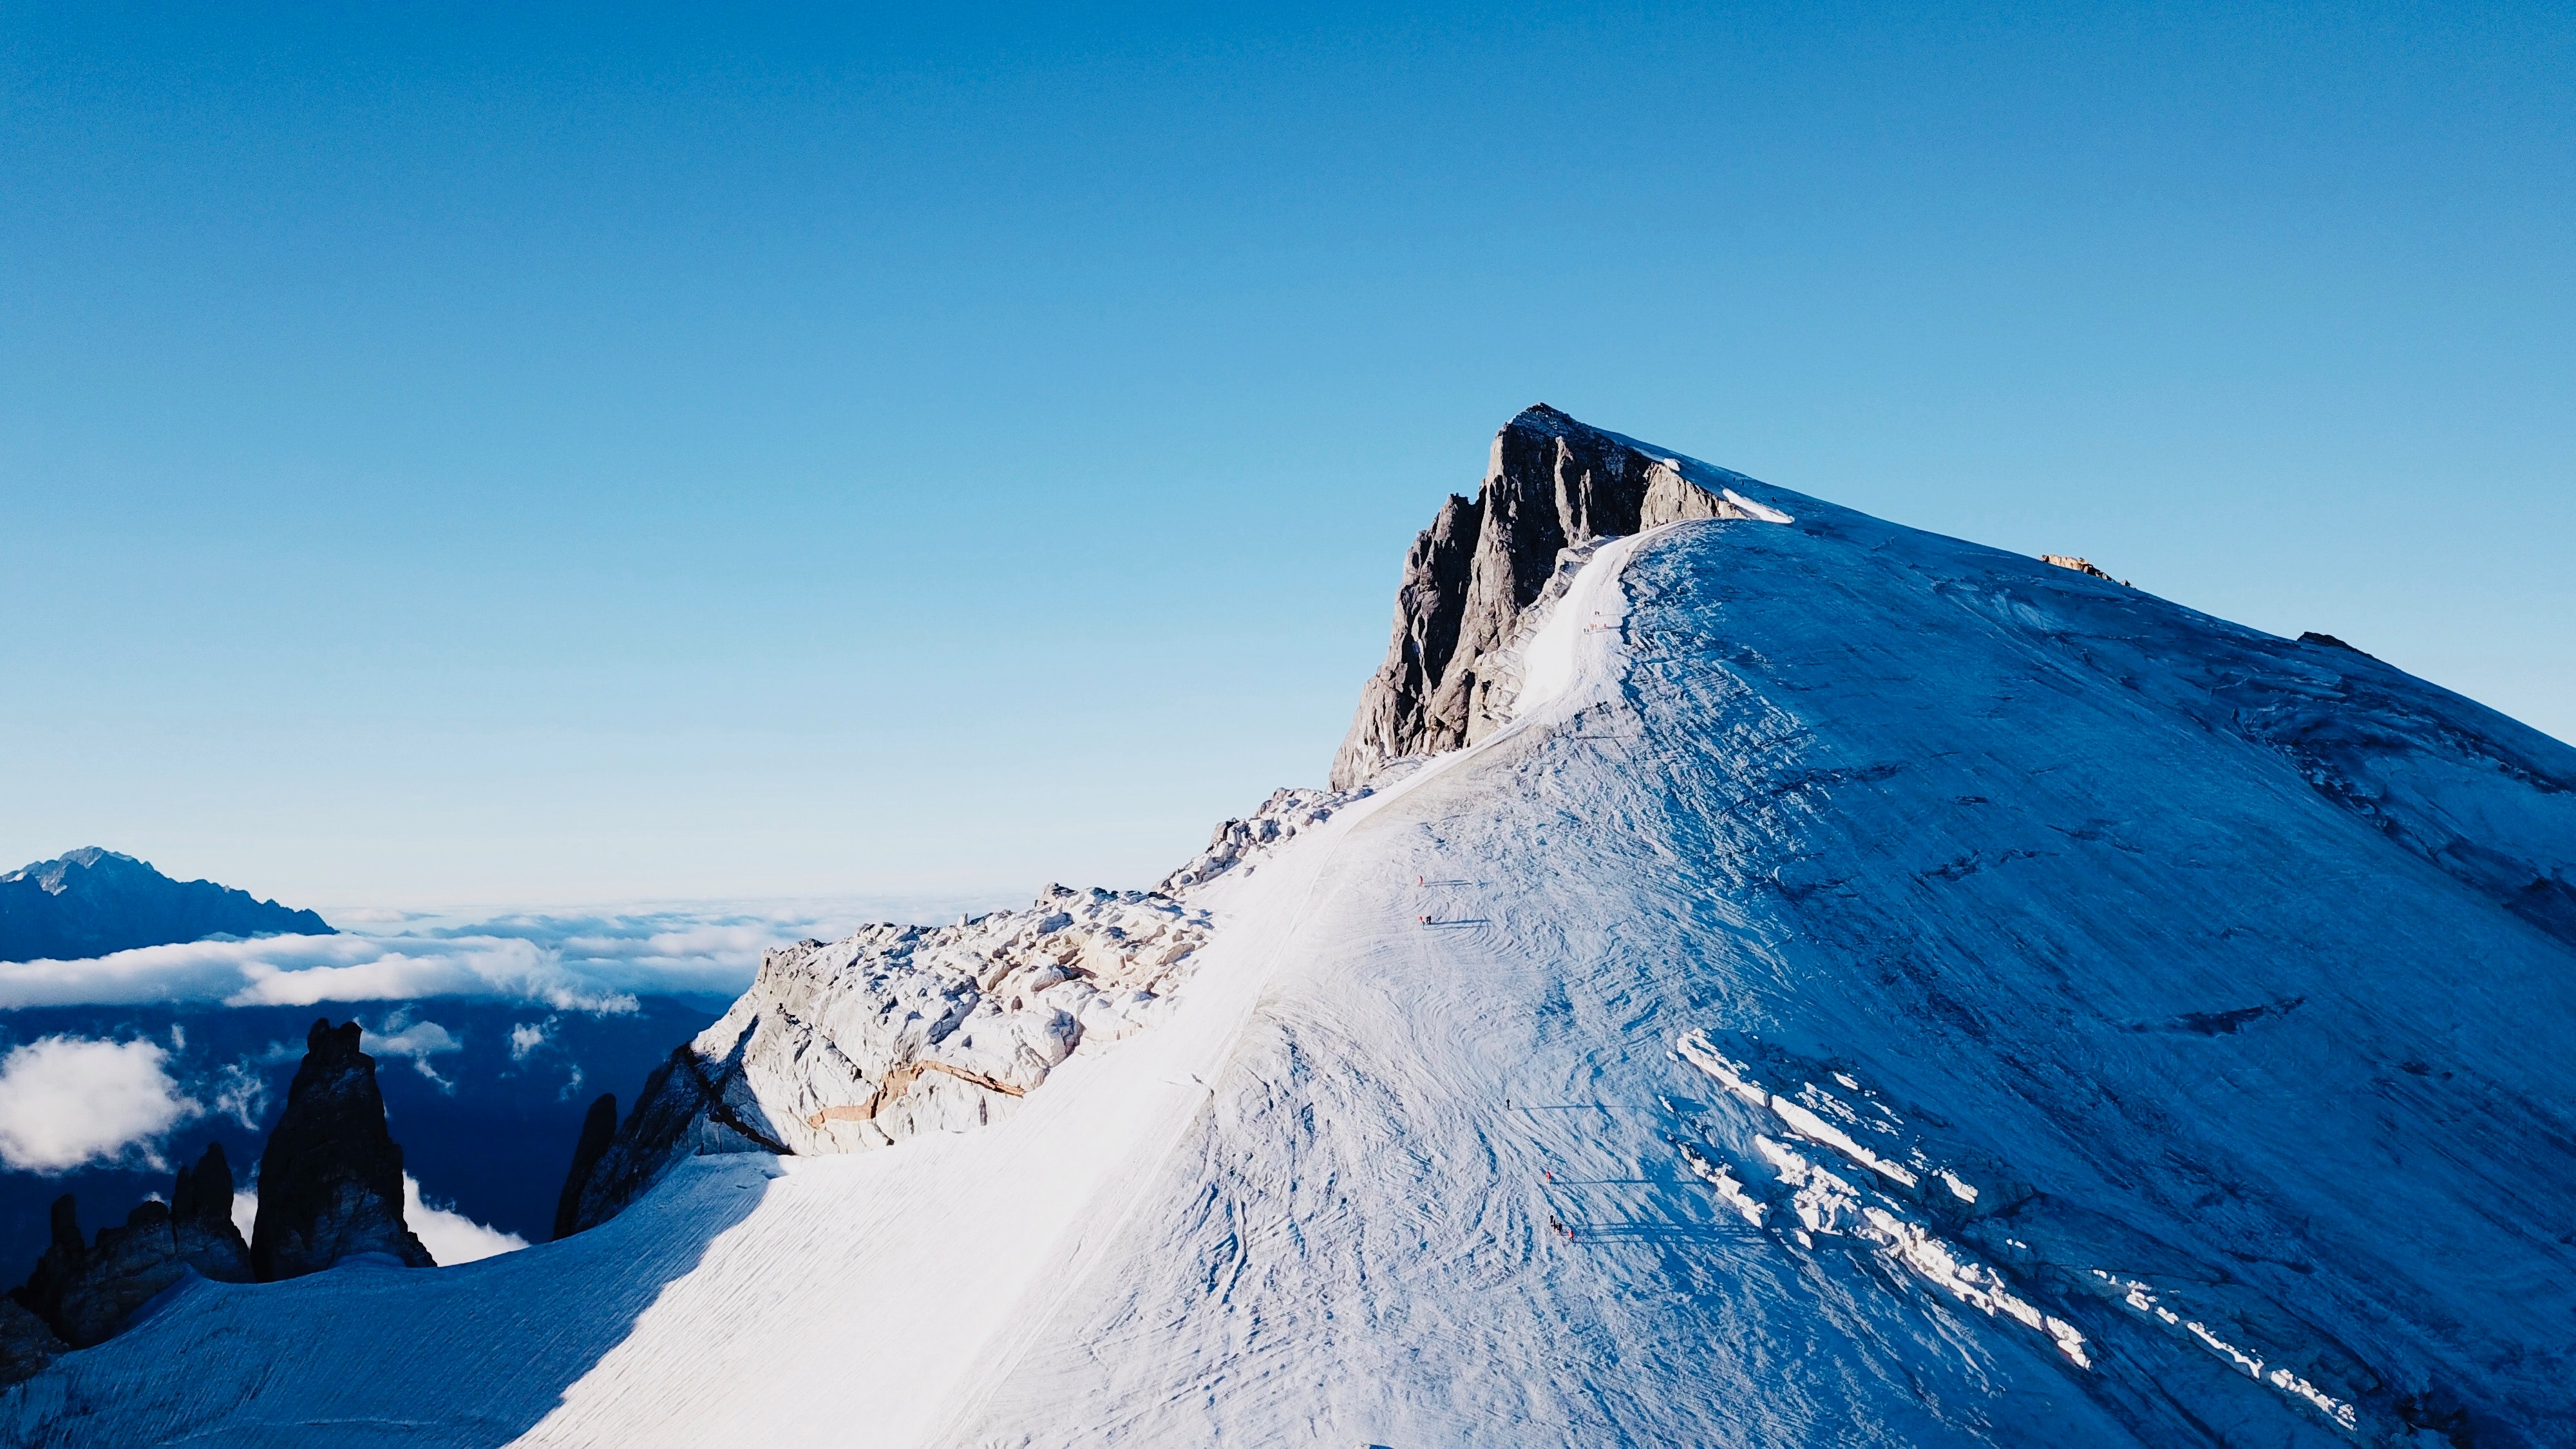 mountain with snow during daytime